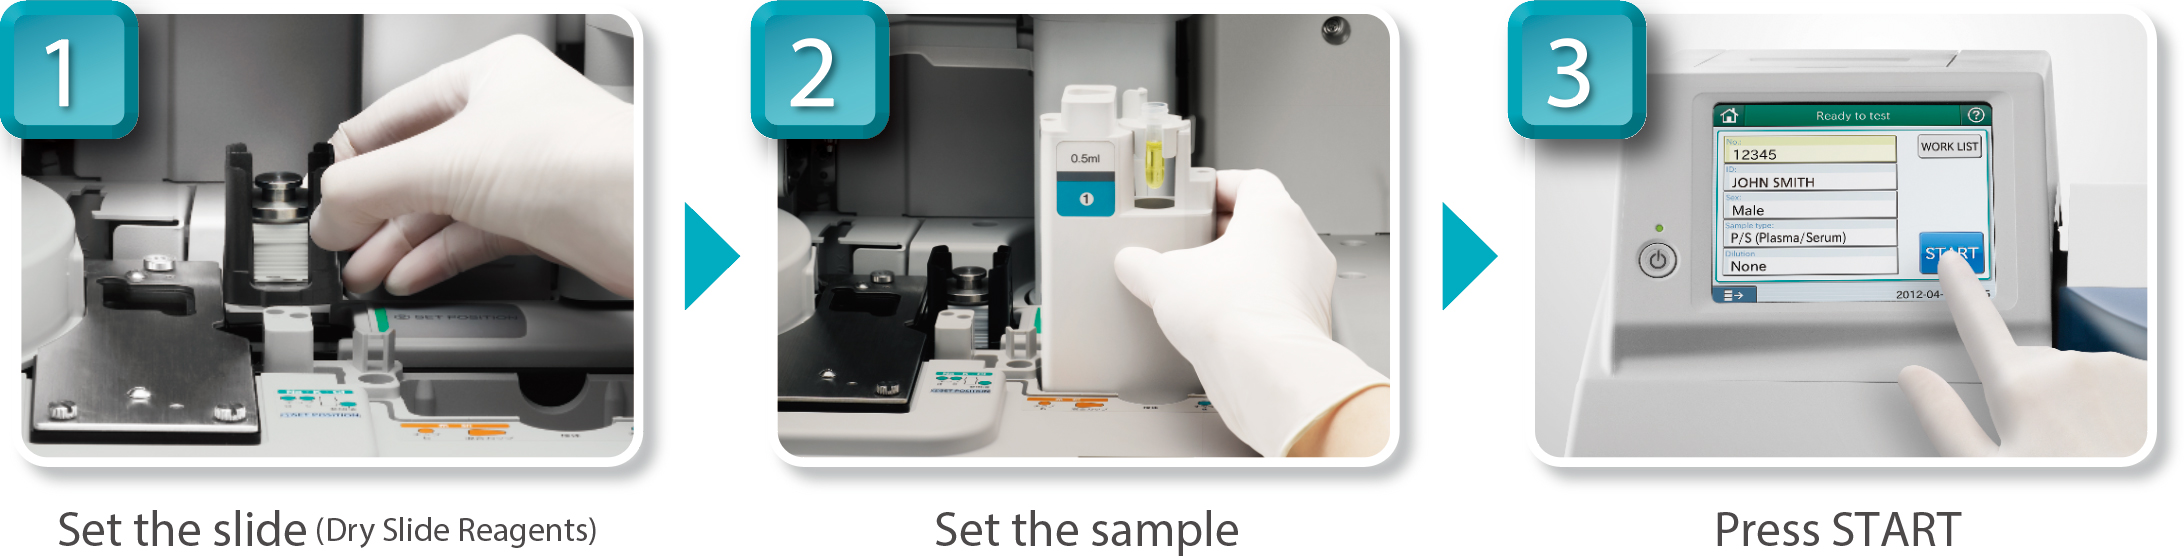 [photo] Gloved hand setting slide and sample inside machine and pressing start